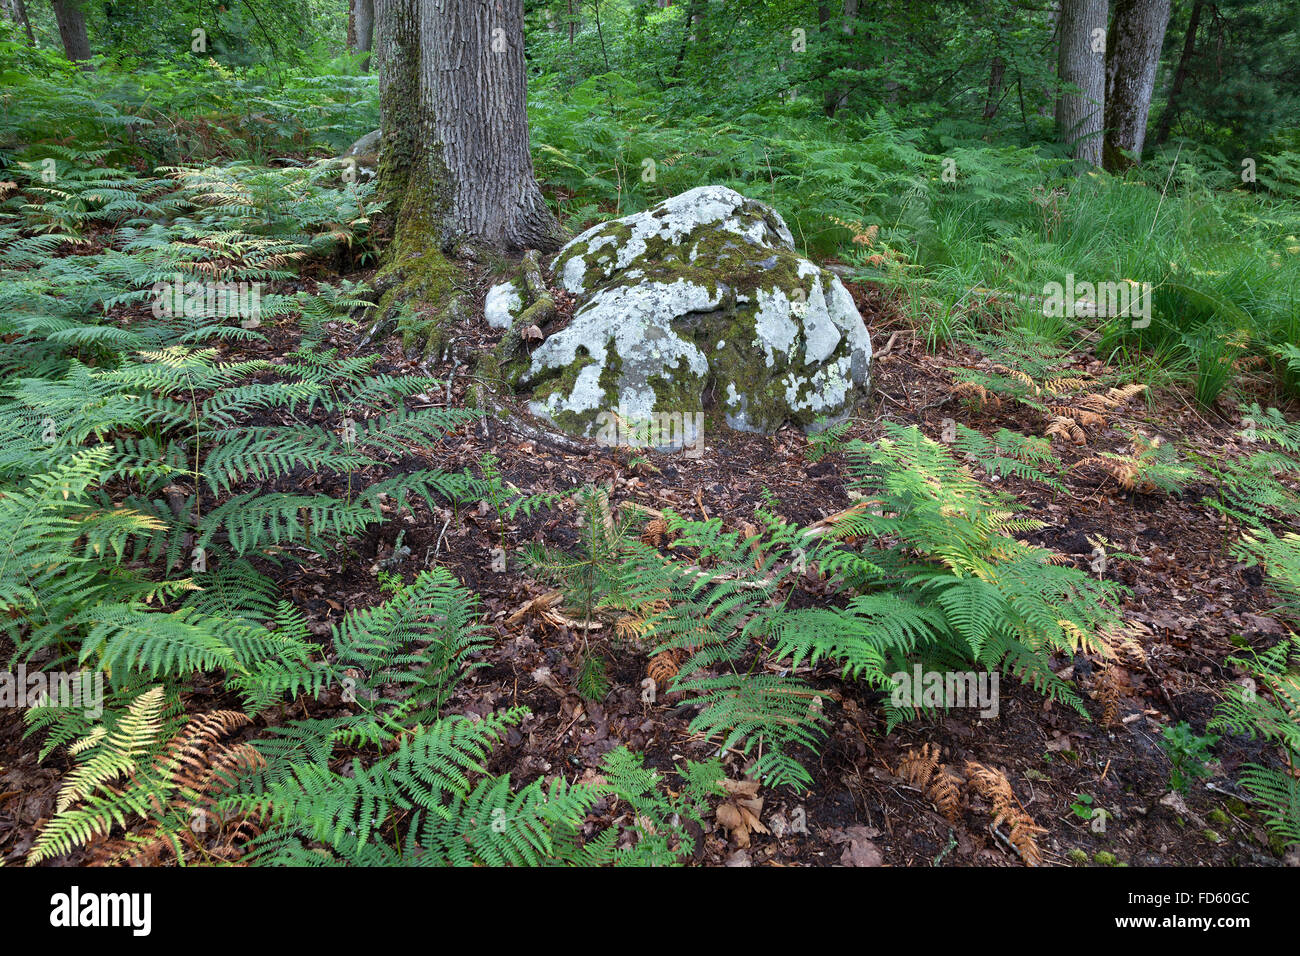 Ferns and a rock with moss in the wood - Stock Image